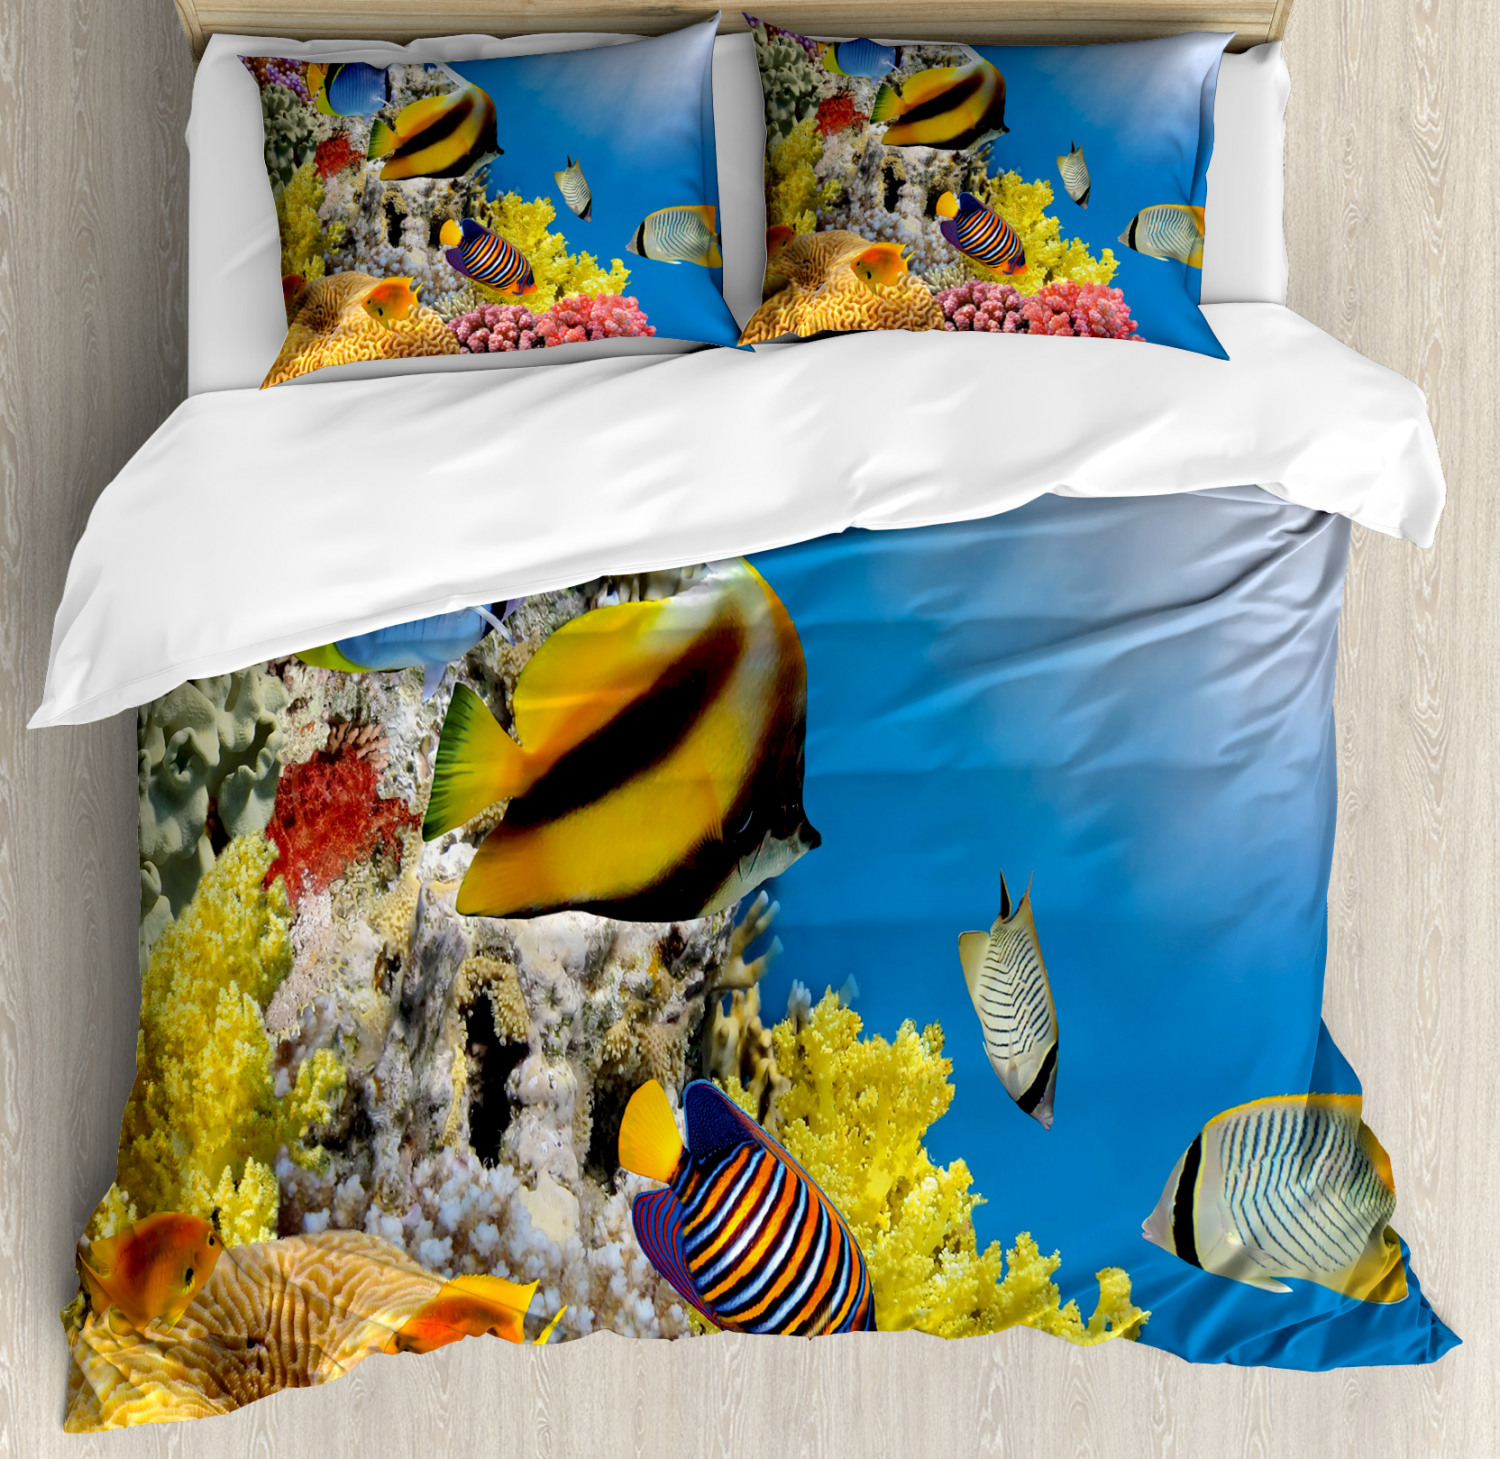 Ocean Duvet Cover Set with Pillow Shams Coral Colony on Reef Top Print